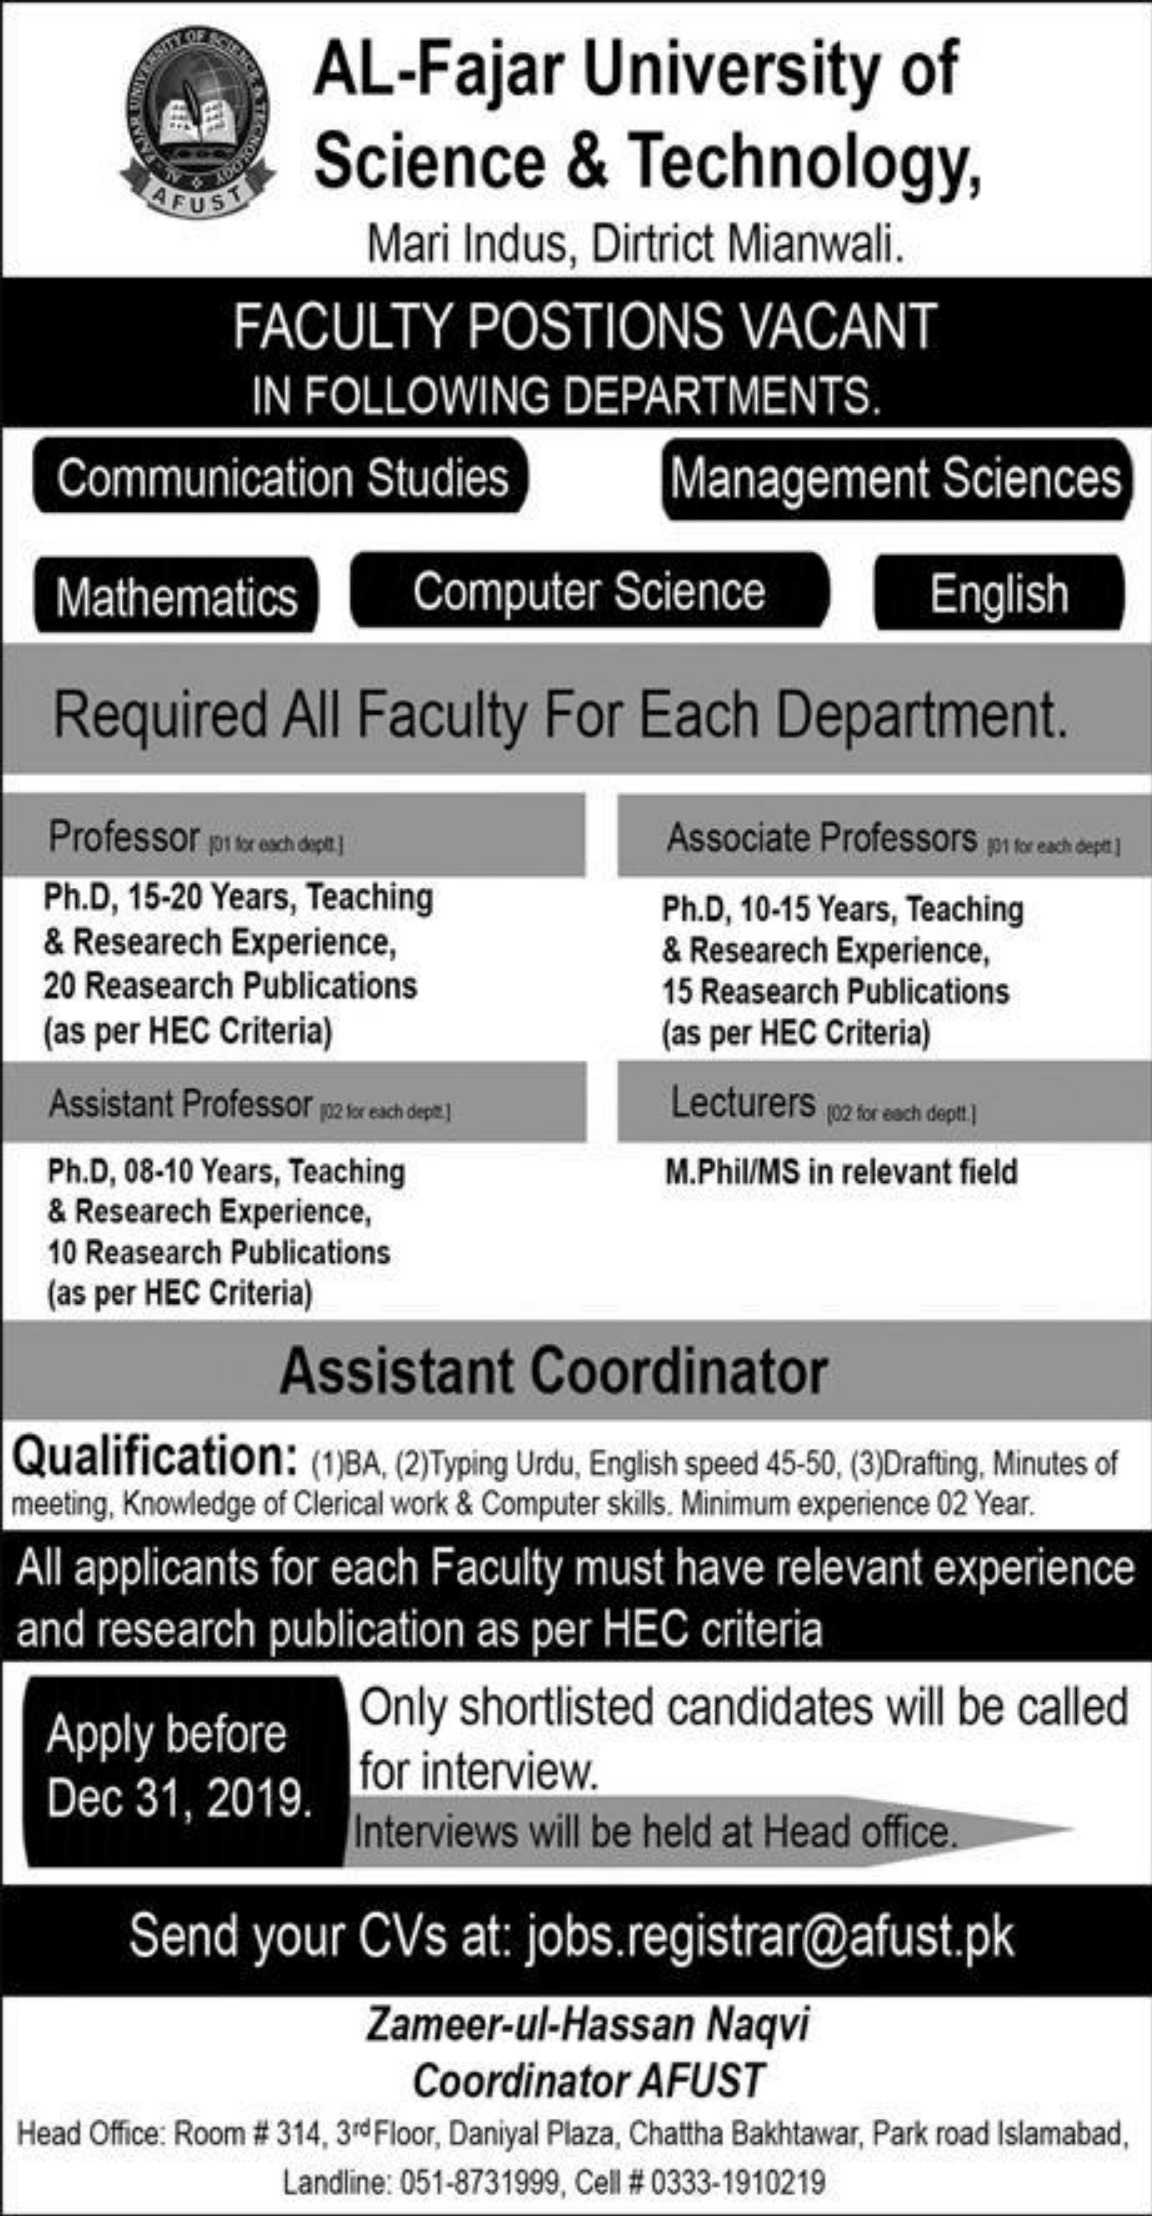 Al-Fajar University of Science & Technology Mianwali Jobs 2019